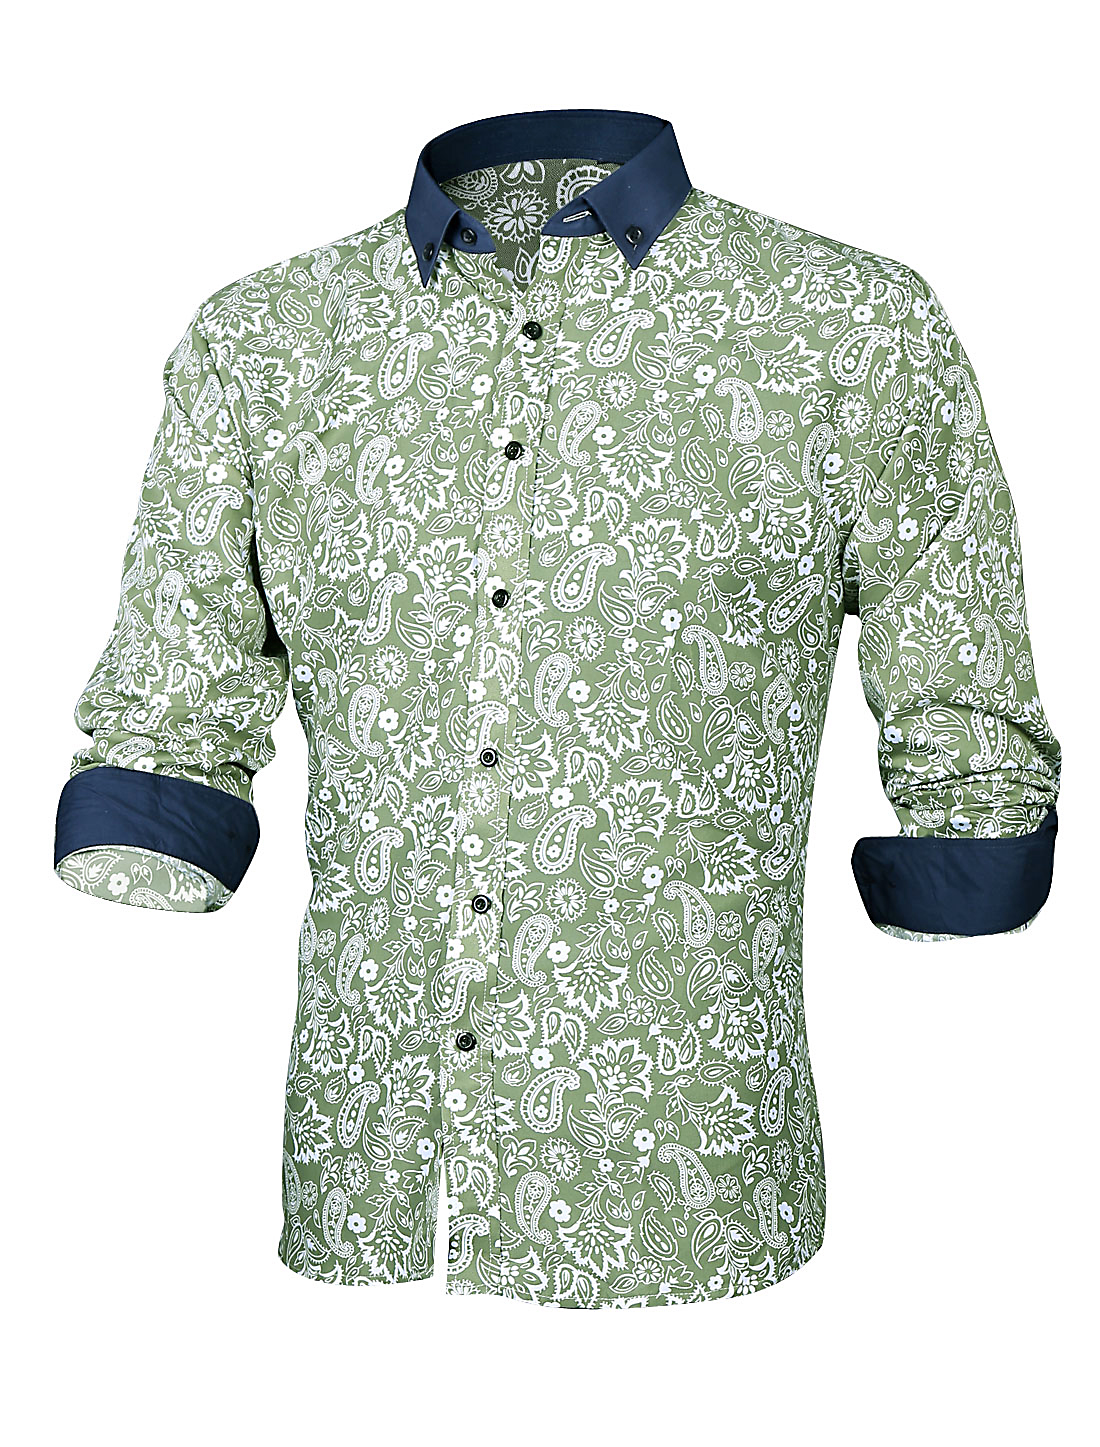 Men Paisleys Floral Prints Button Closed Casual Shirt Emerald M